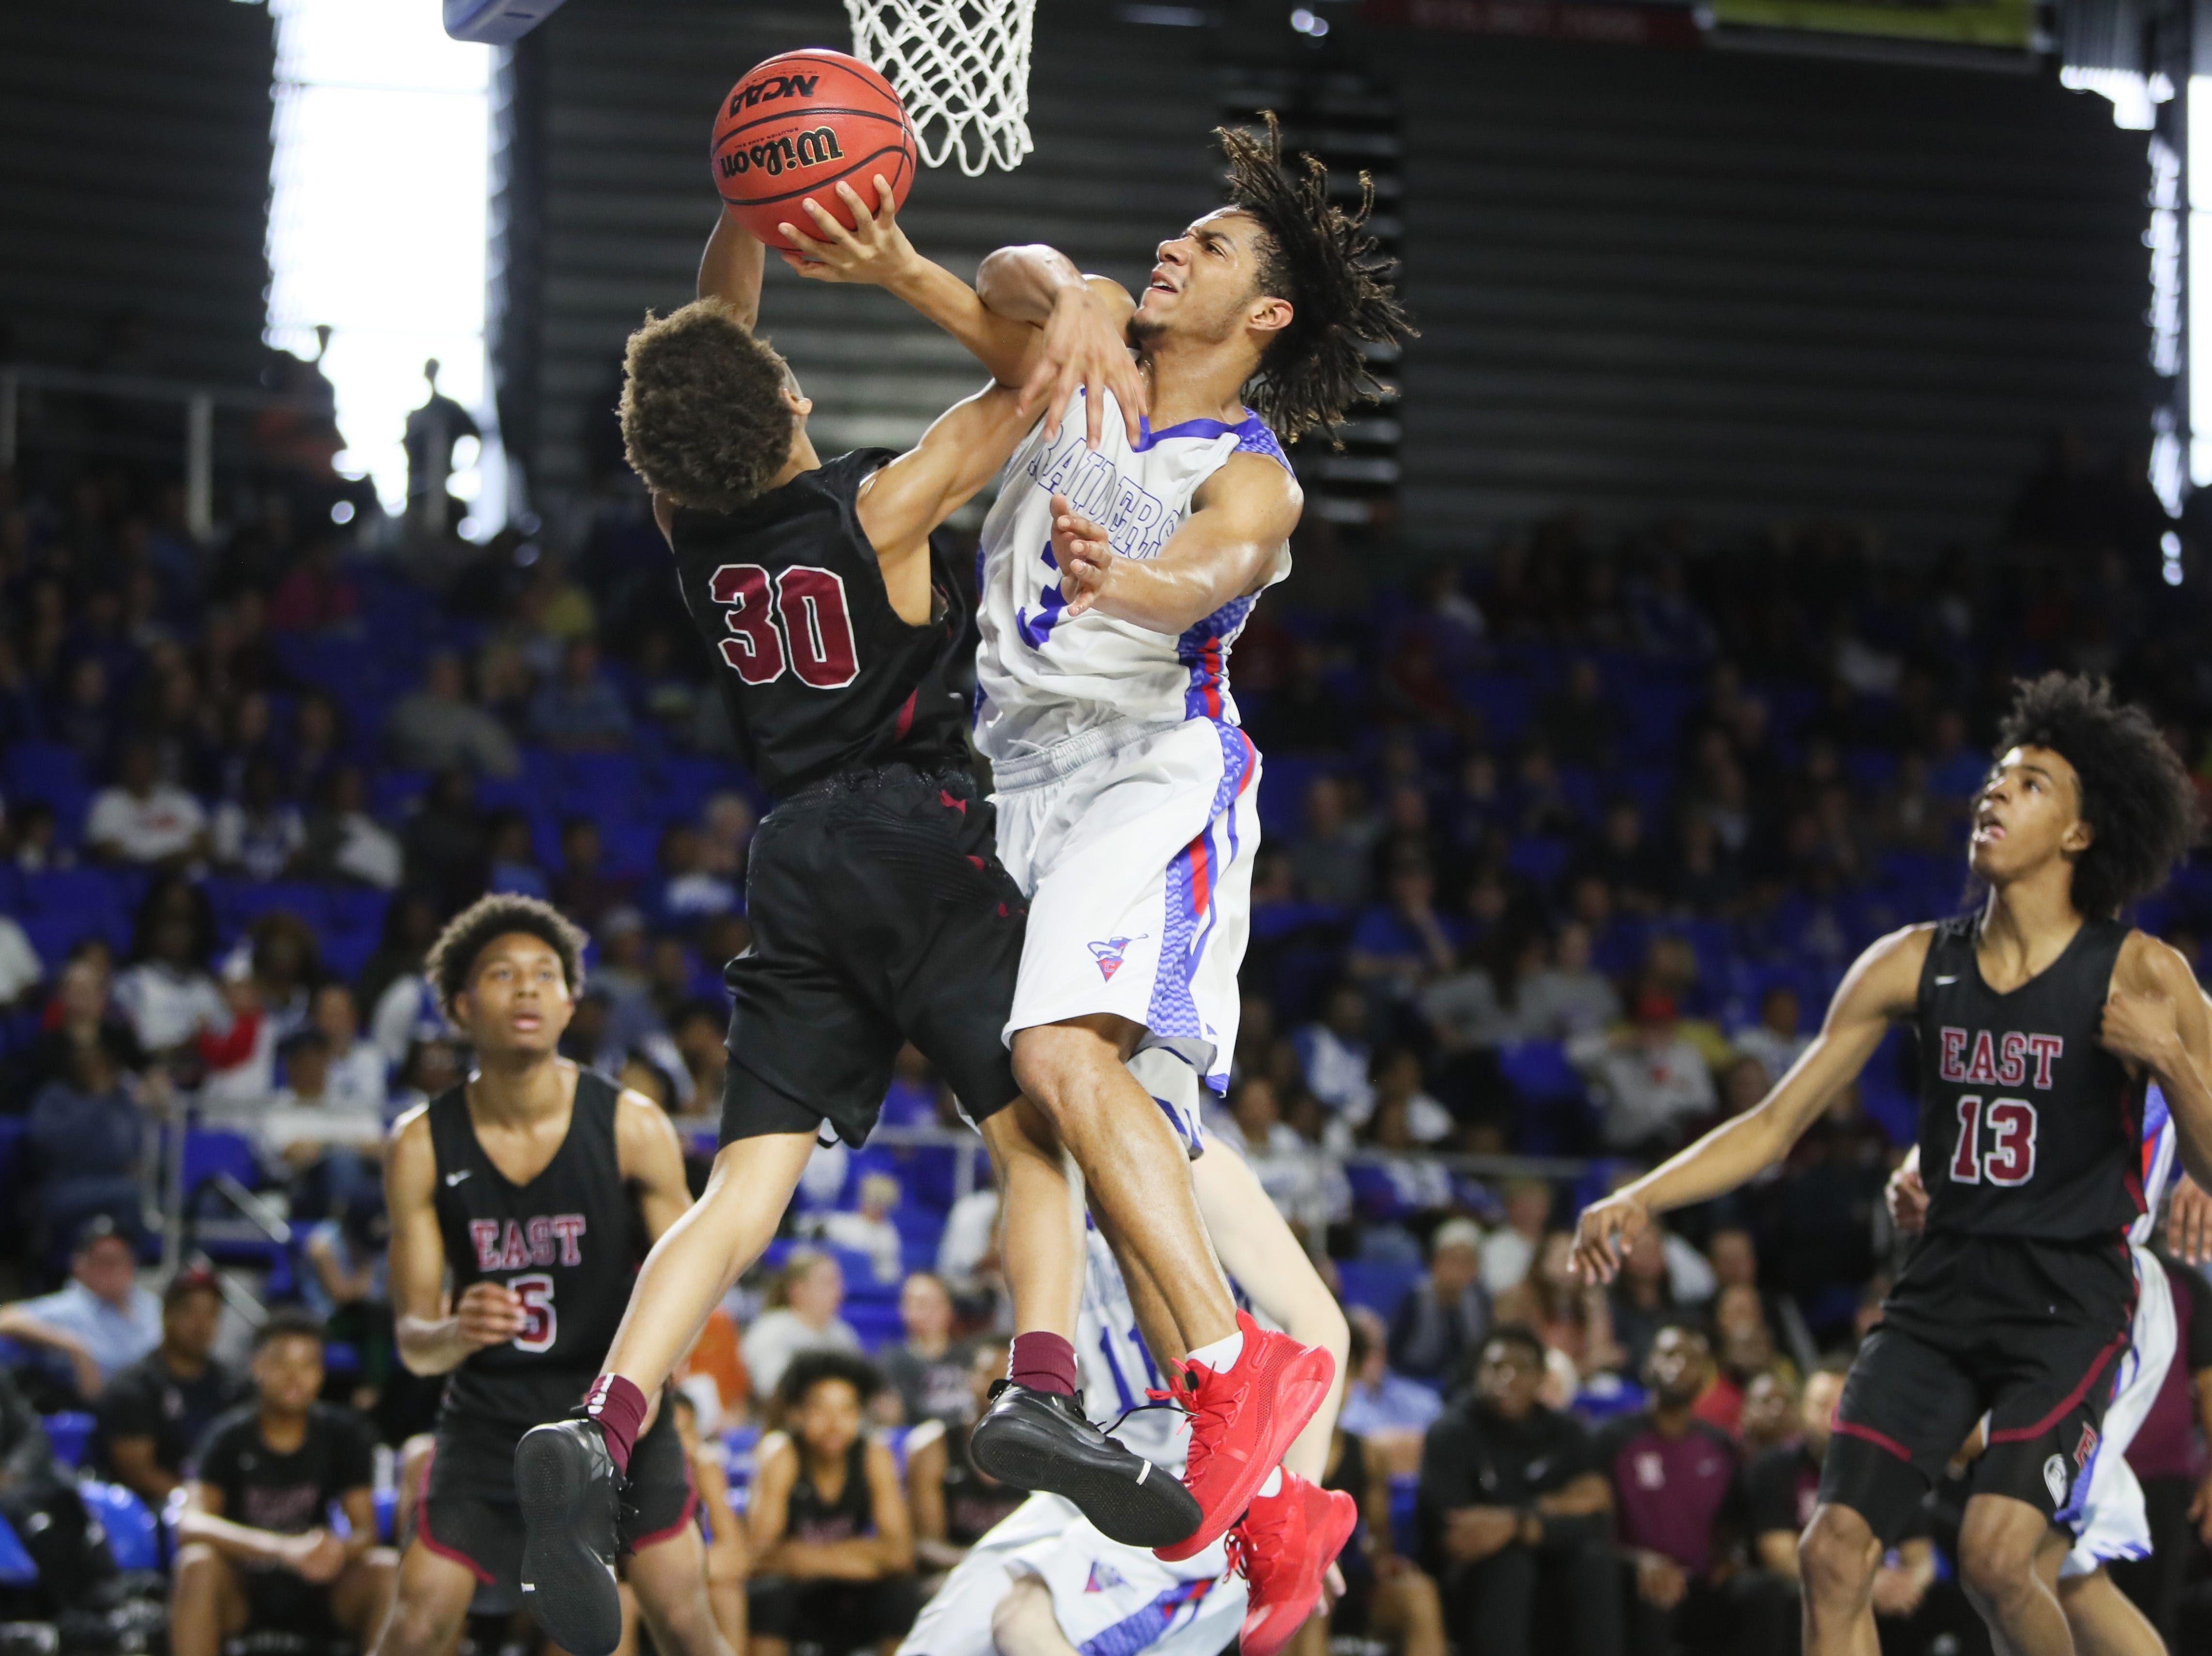 Memphis East's Terrence Jacobs draws a foul from Cleveland's Isaiah Johnson during the TSSAA Division I basketball state tournament at the Murphy Center in Murfreesboro, Tenn. on Thursday, March 14, 2019.